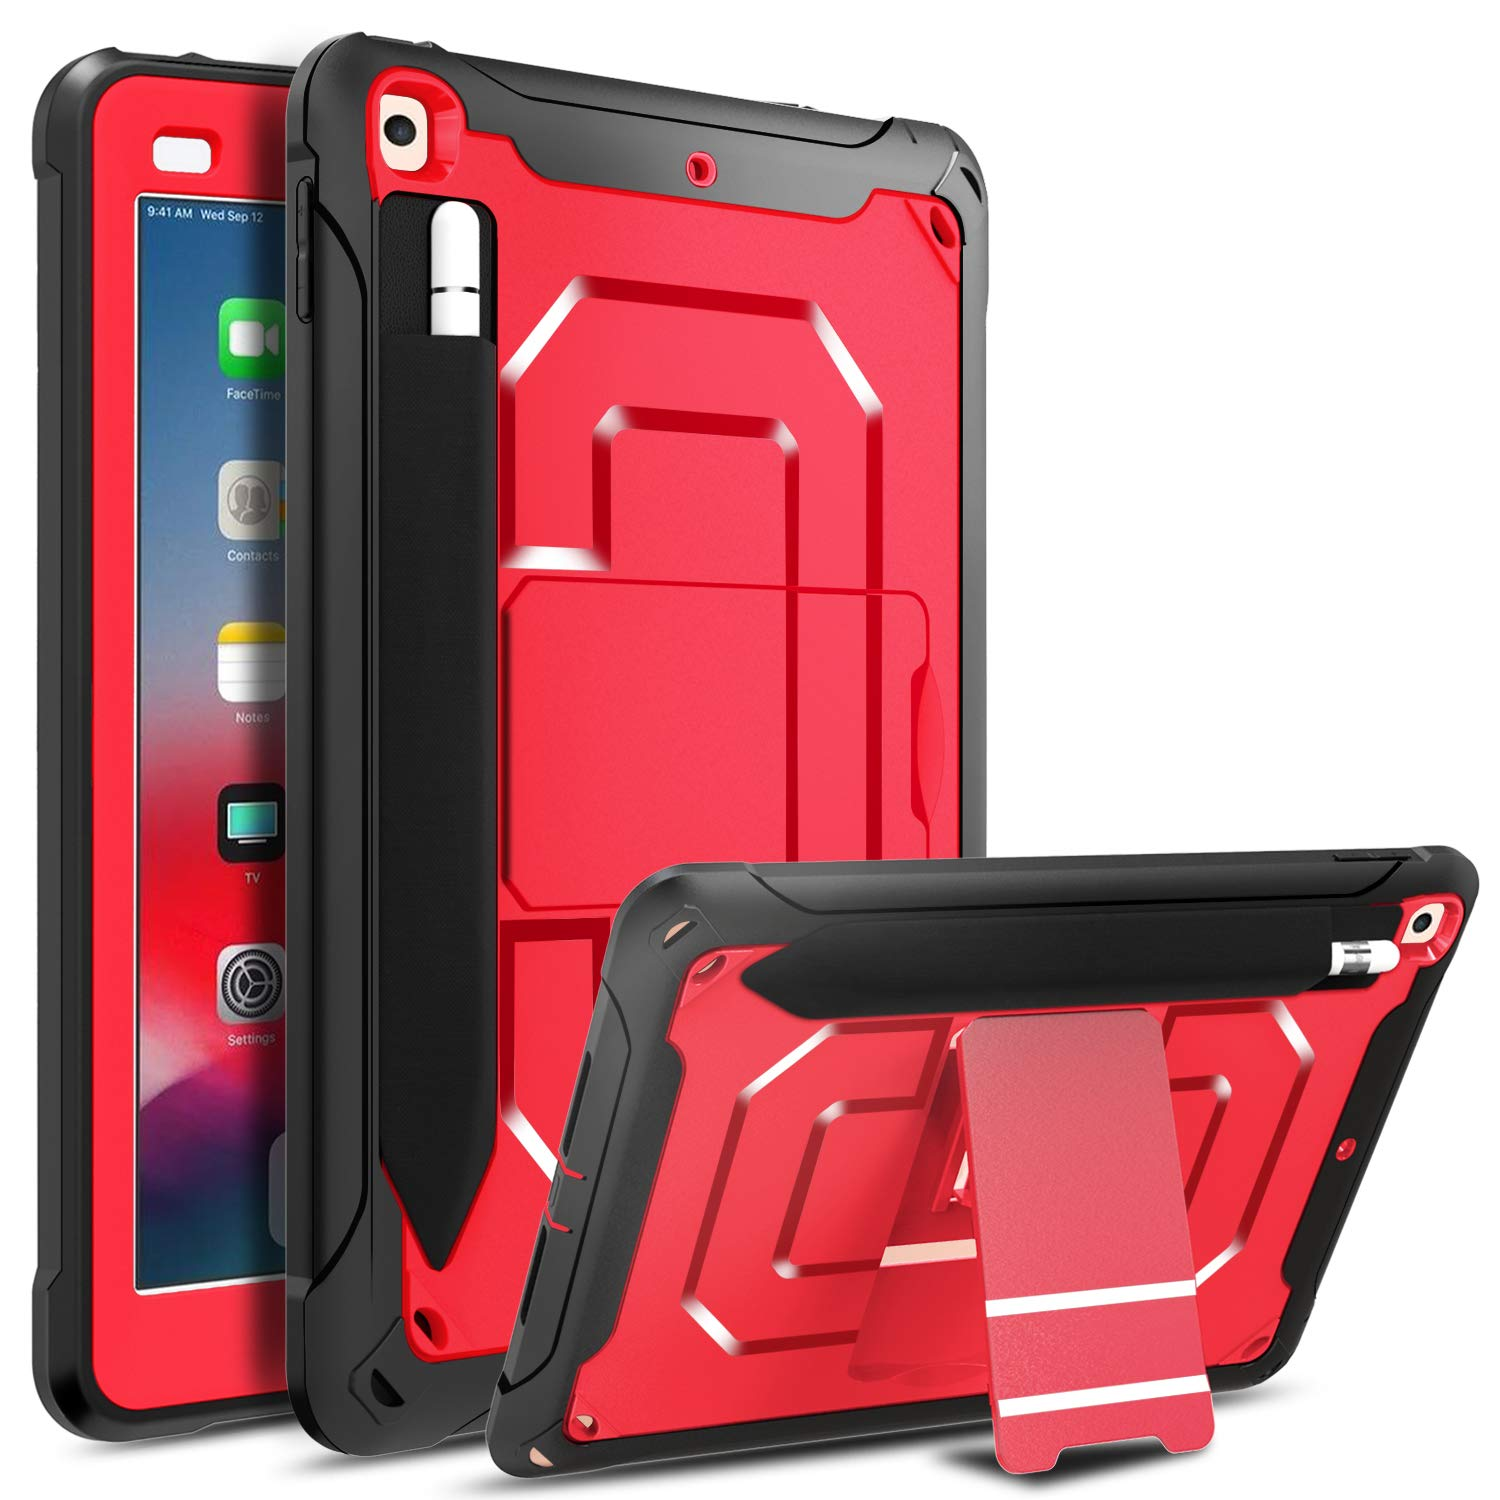 DONWELL Compatible iPad 5 iPad 6 Case 9.7 inch 2018/2017 Shockproof Defender Protective Cover with Pencil Holder and Kickstand Designed for iPad 5th 6th Generation Model A1823 A1822 A1893 (Red)